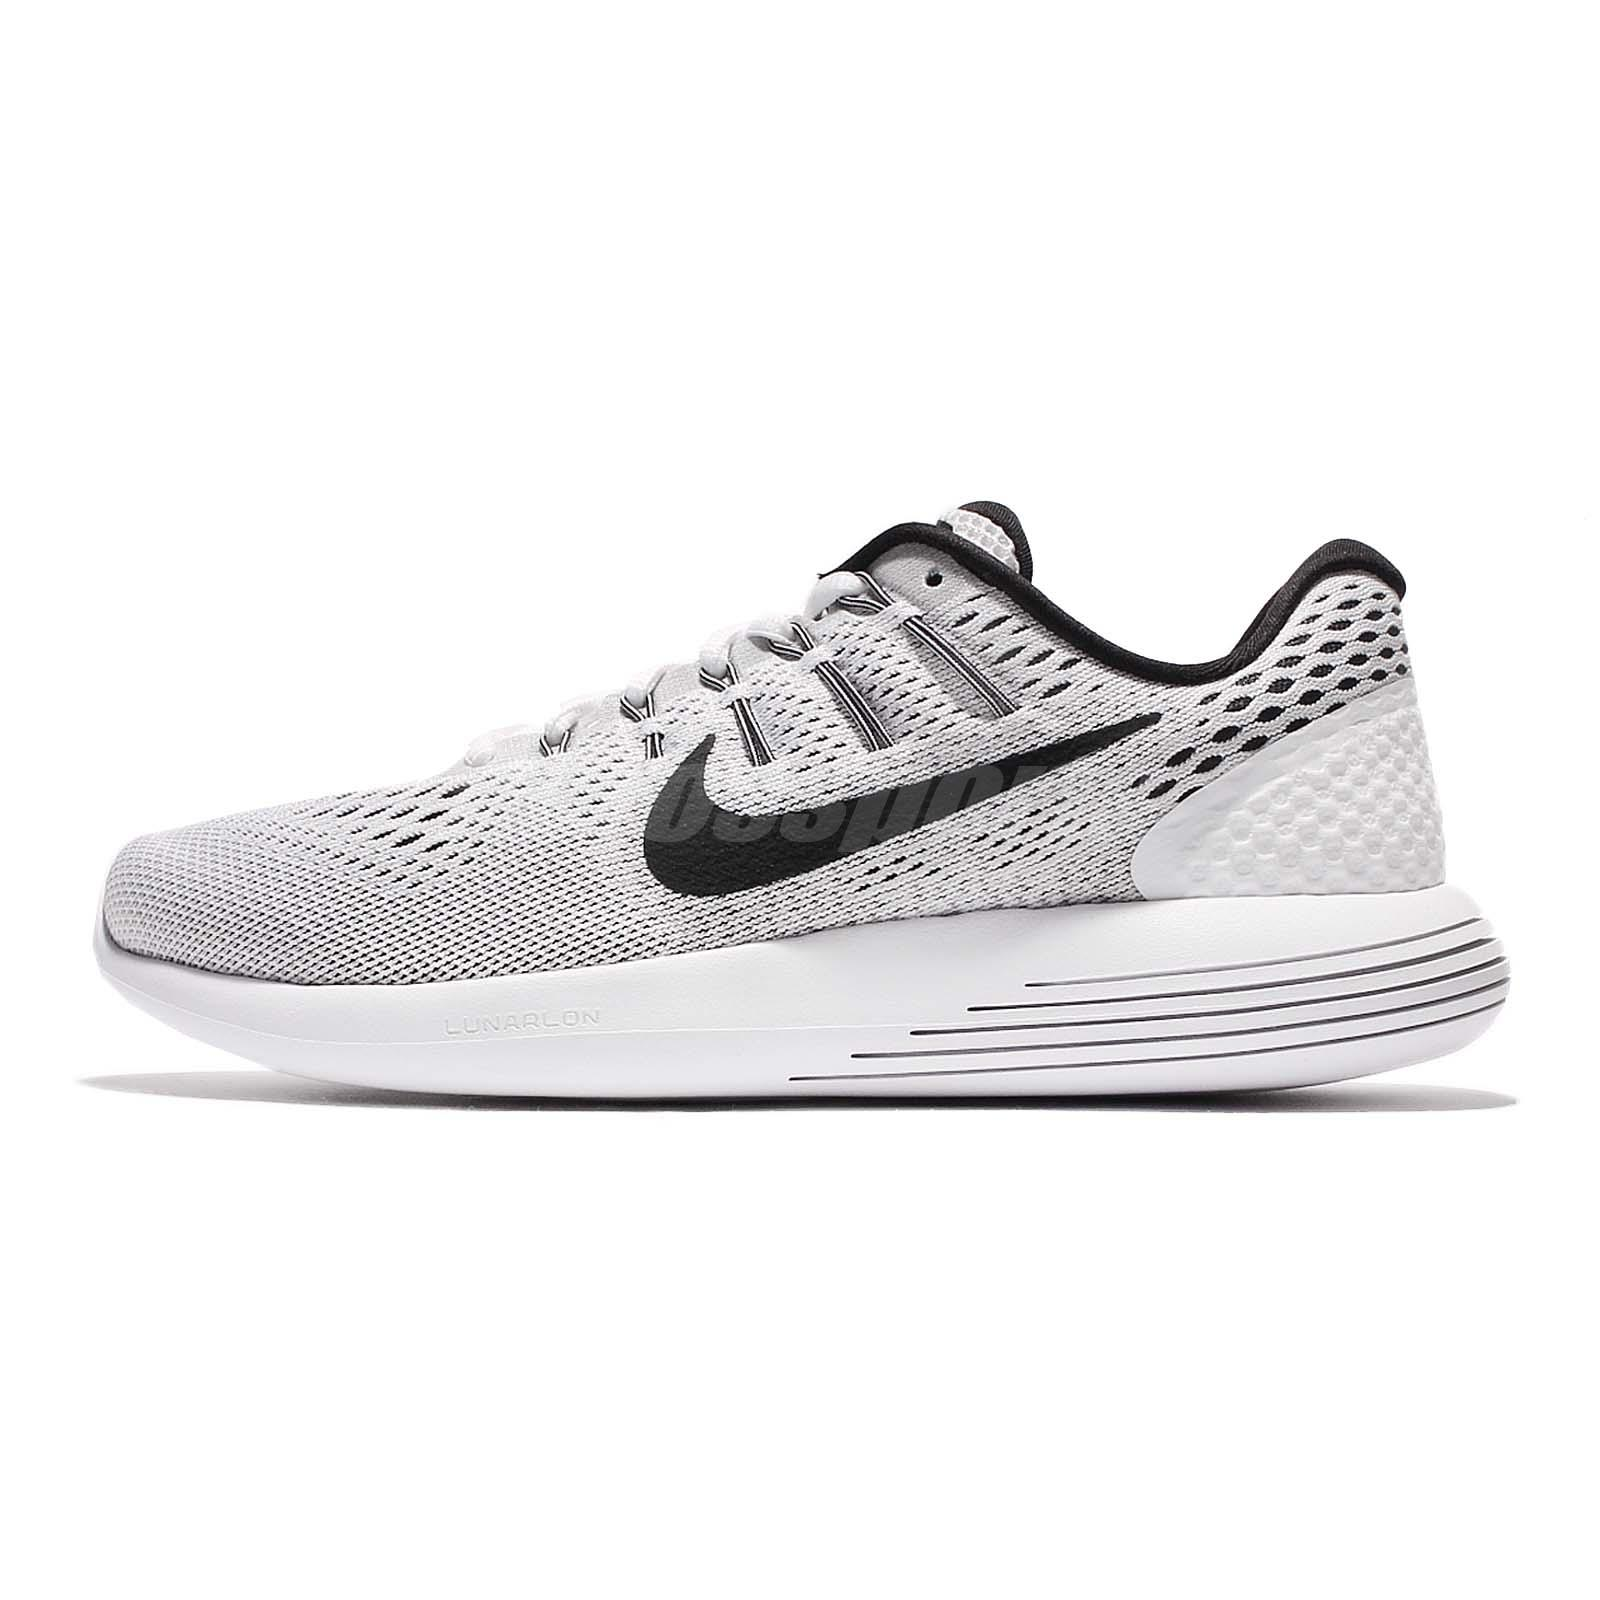 8de4092d4301 Nike Lunarglide 8 VIII White Grey Black Mens Running Shoes Lunarlon  843725-100